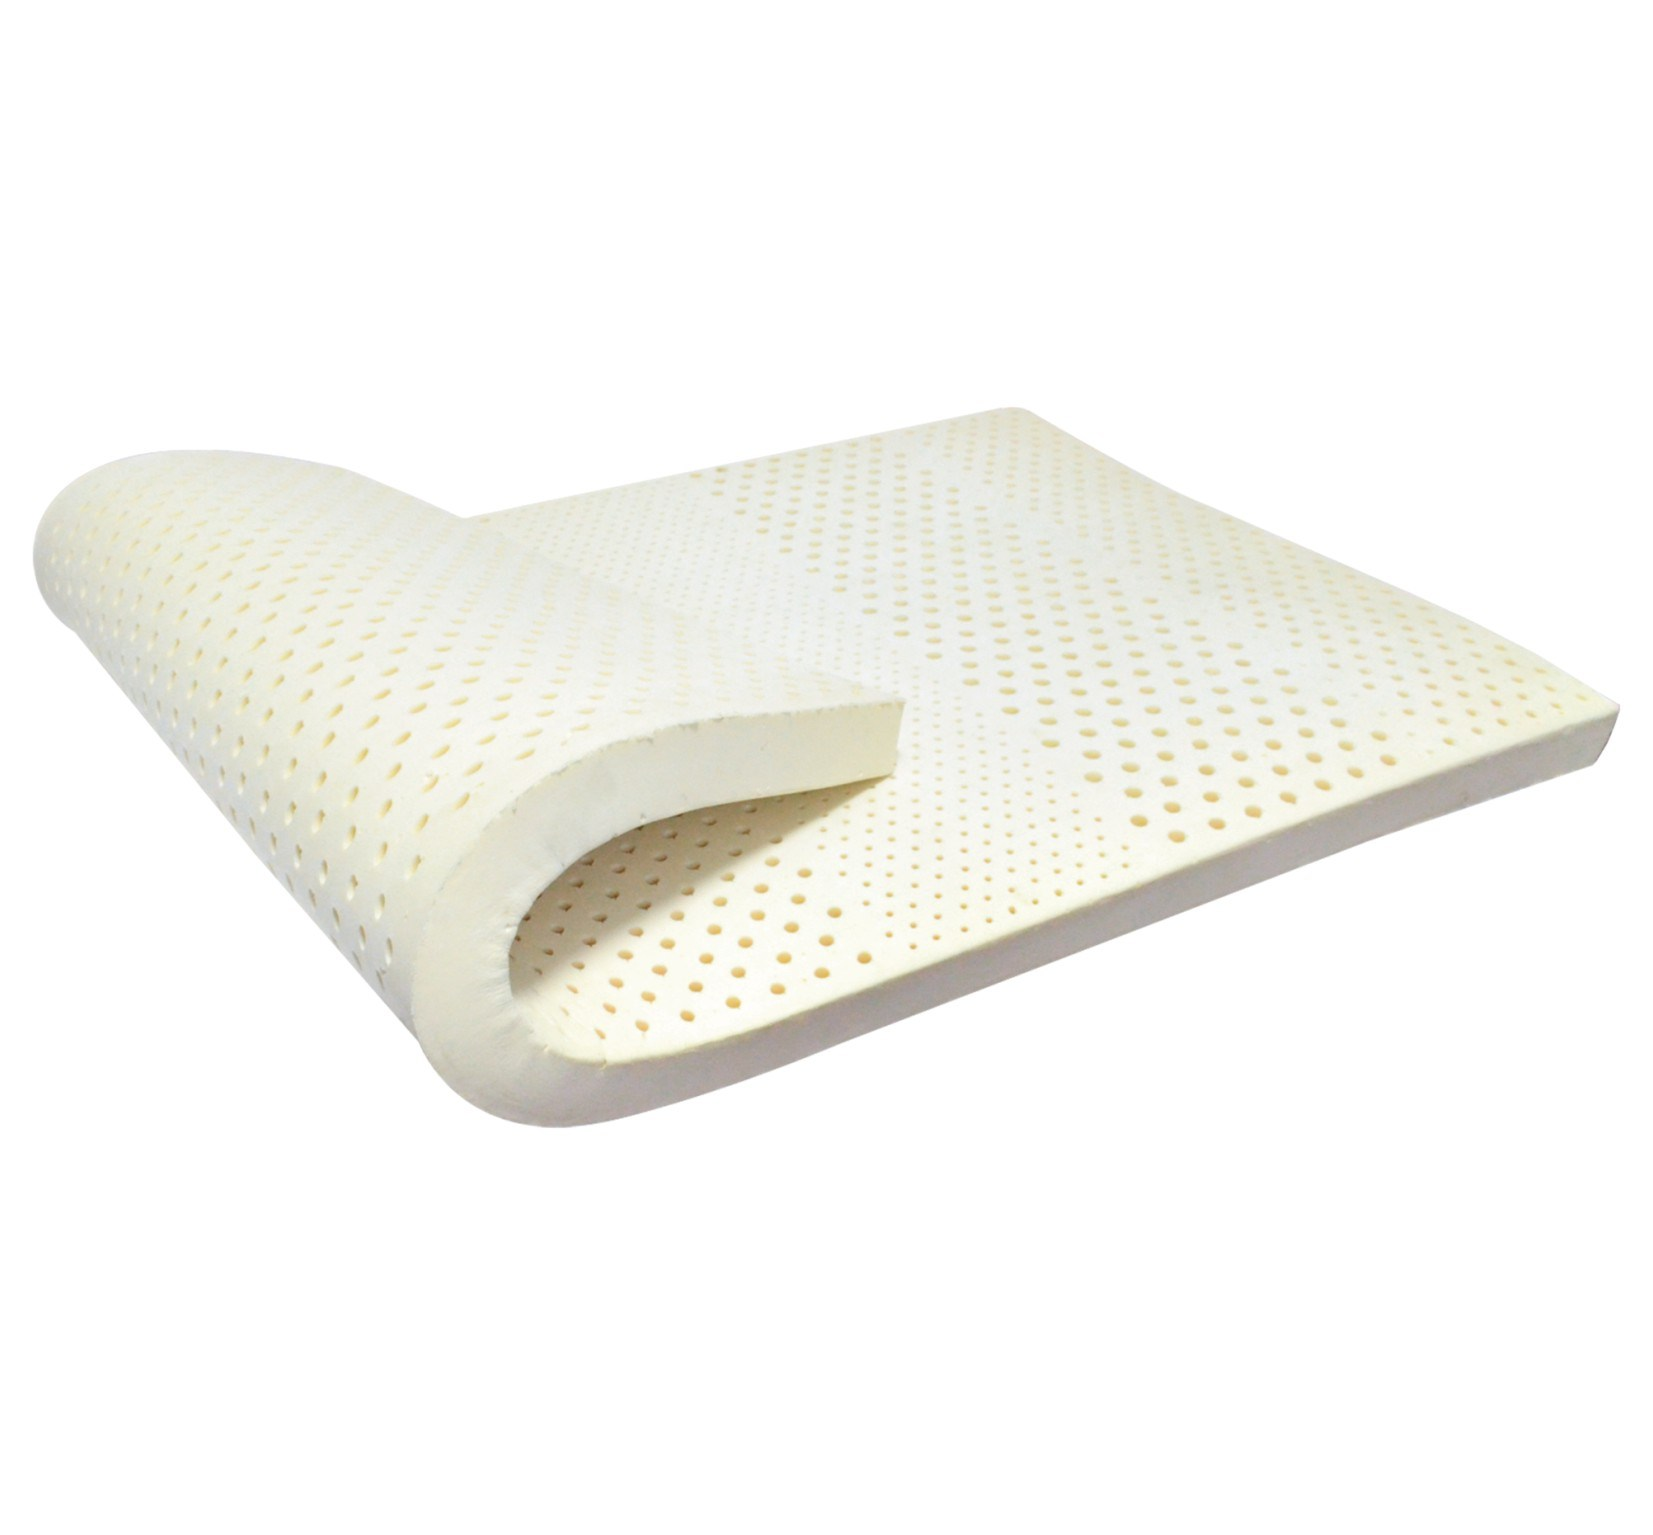 Latex Foam Mattress Hot Item Nature Latex Foam Mattress Toppers With Holes